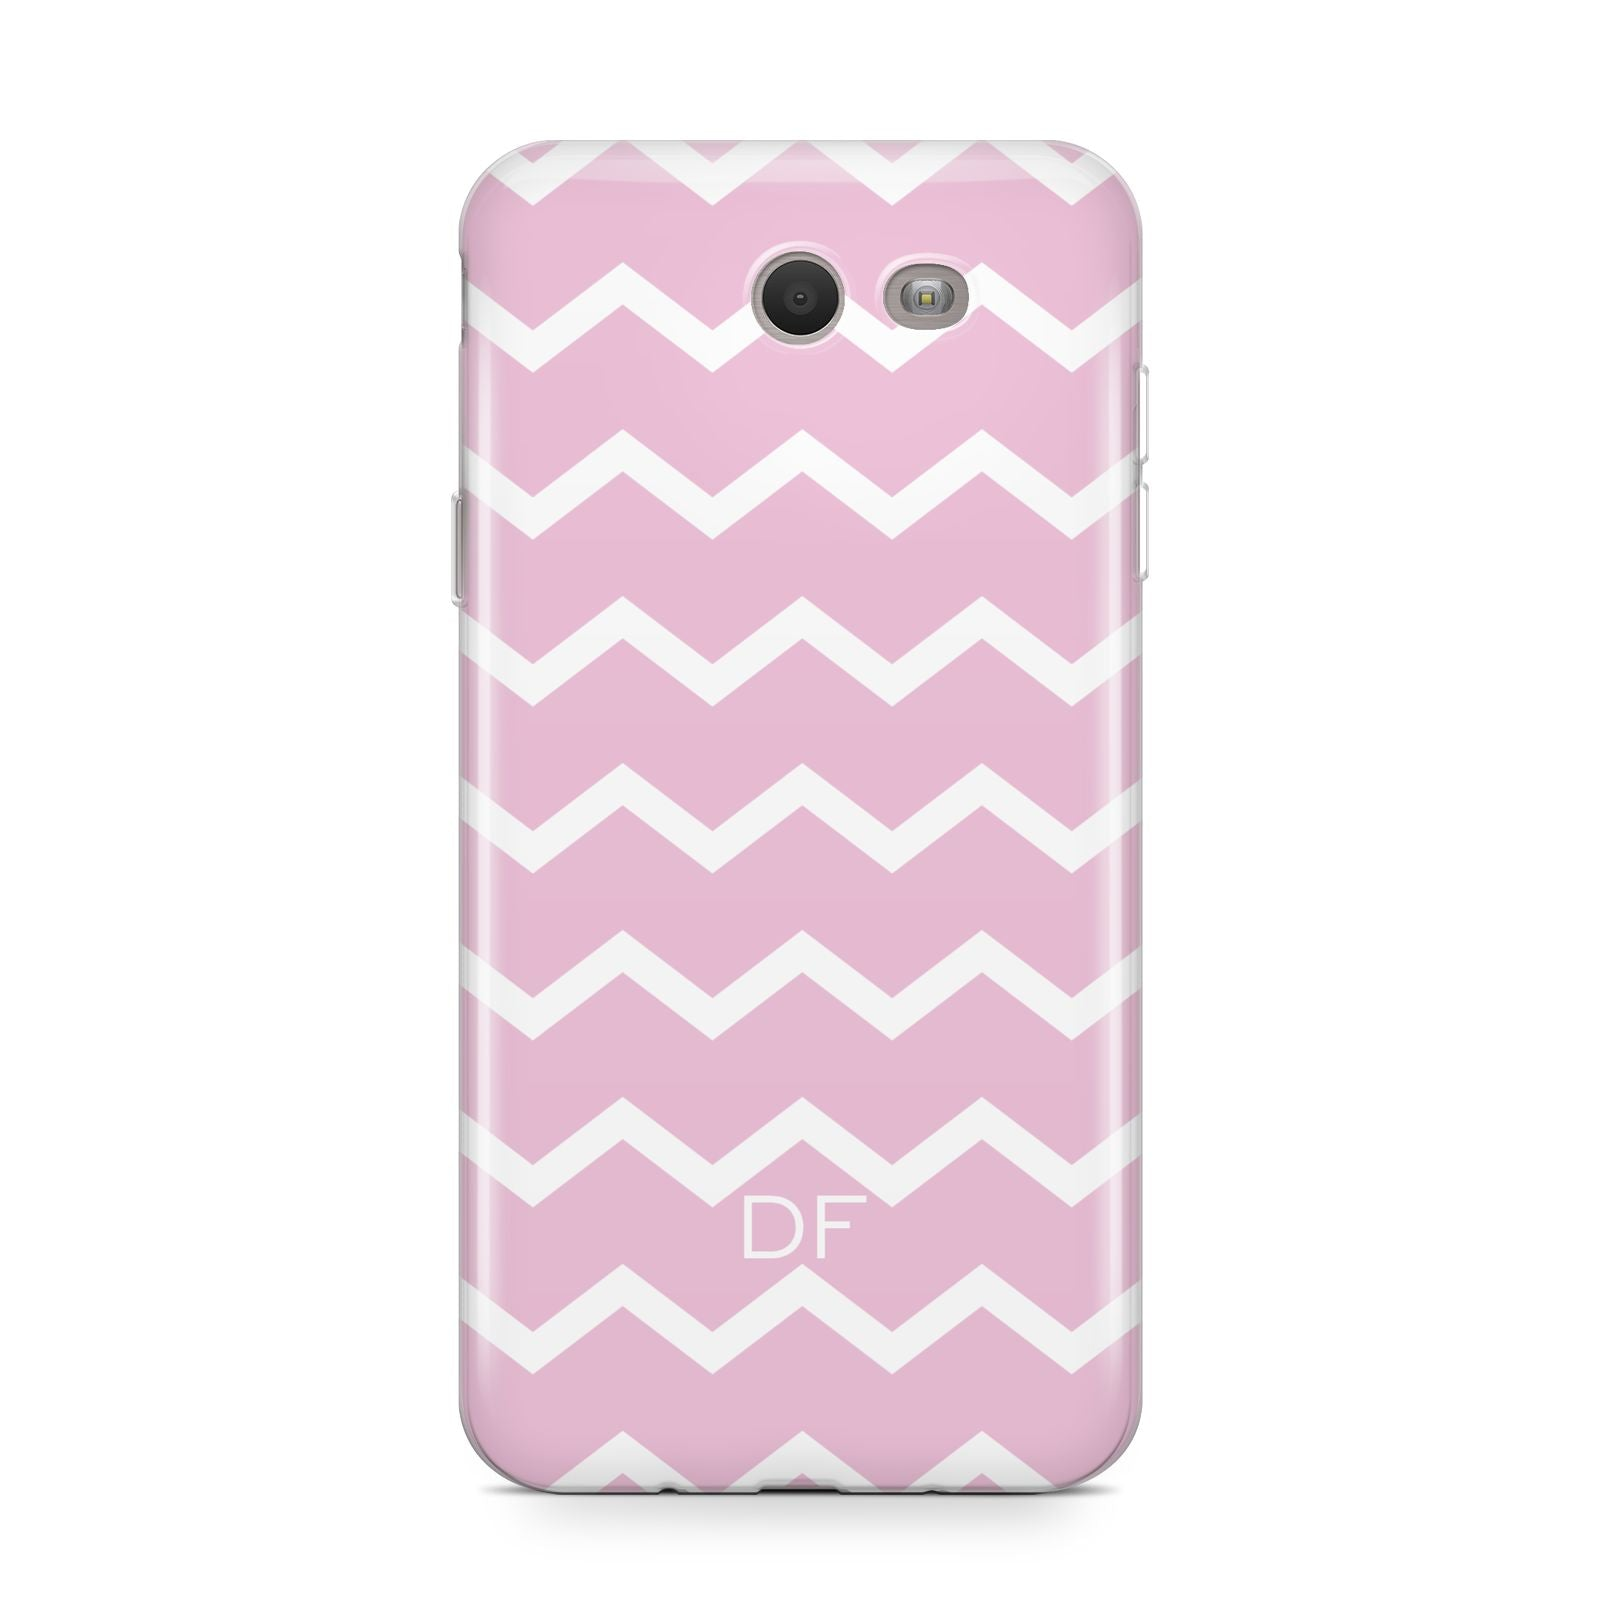 Personalised Chevron Pink Samsung Galaxy J7 2017 Case